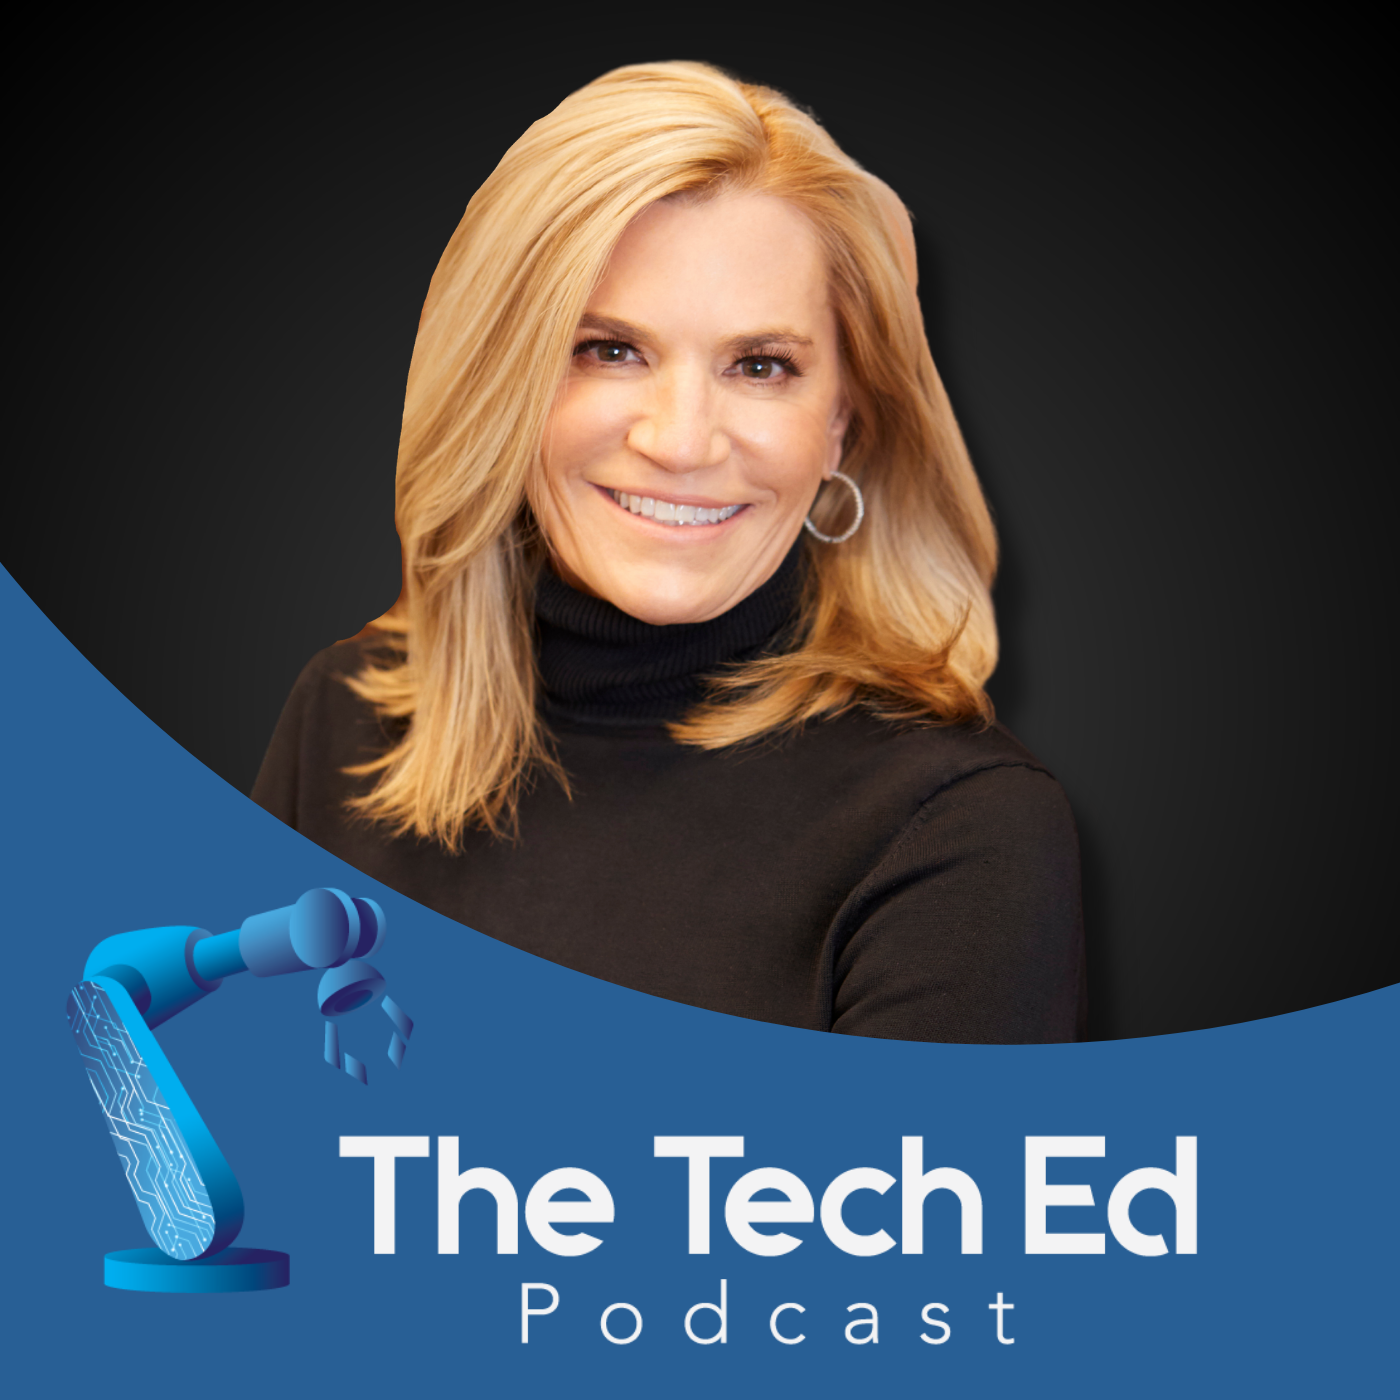 Laura Kohler on The TechEd Podcast